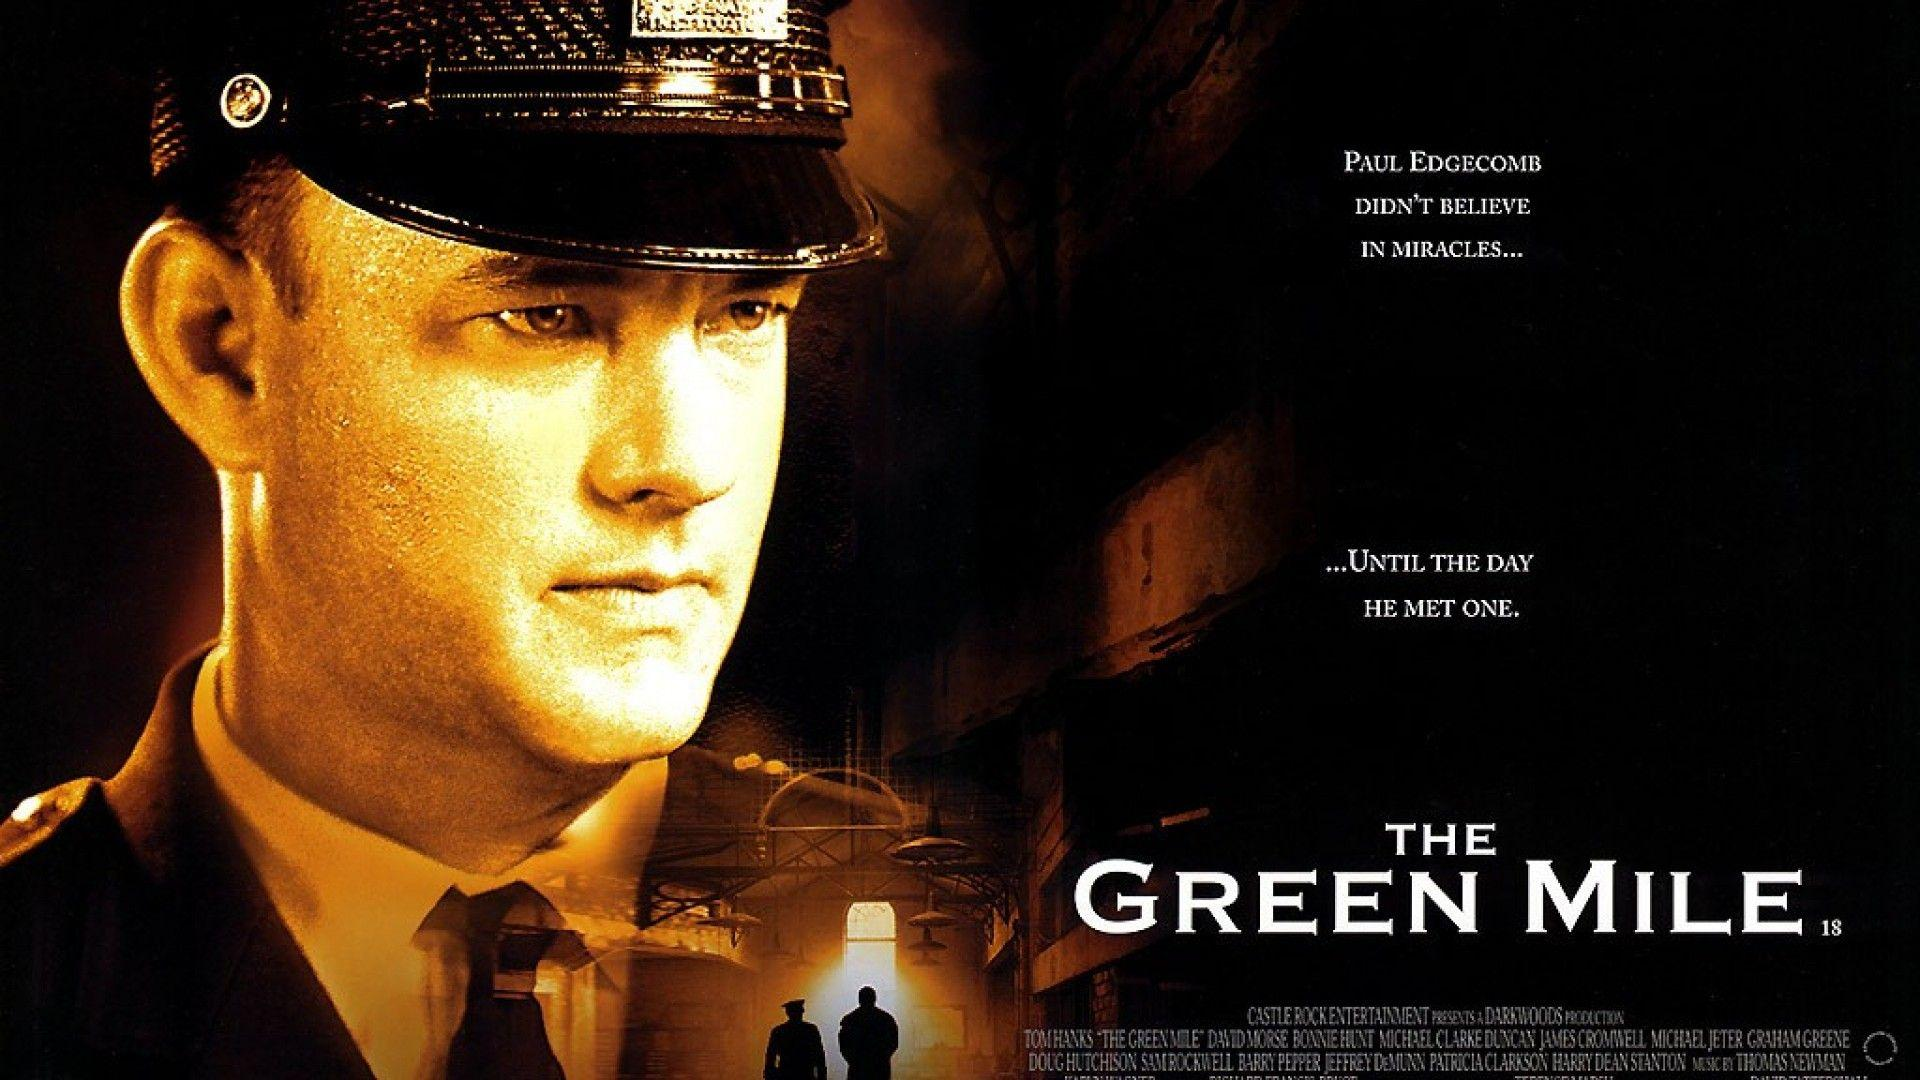 THE GREEN MILE drama poster f wallpapers